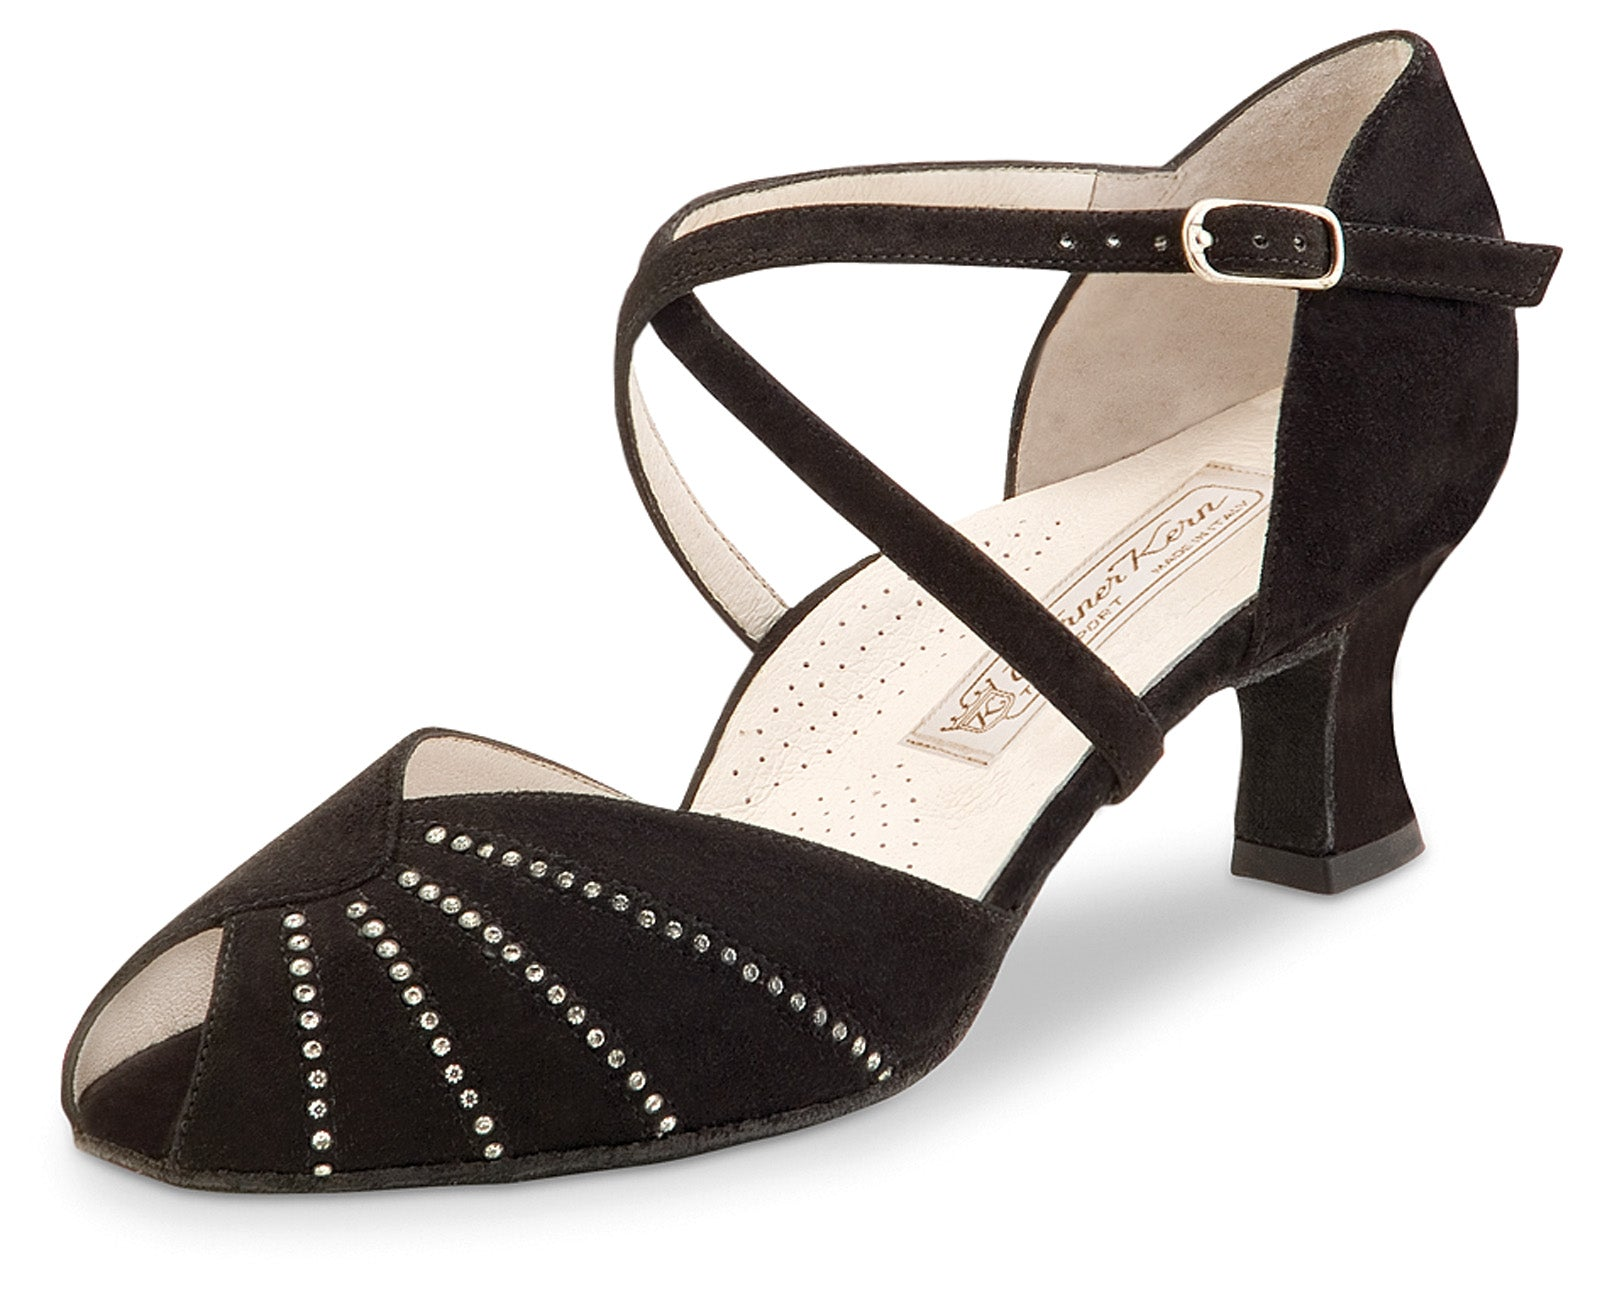 Werner Kern -Sonia comfort black suede with crystals